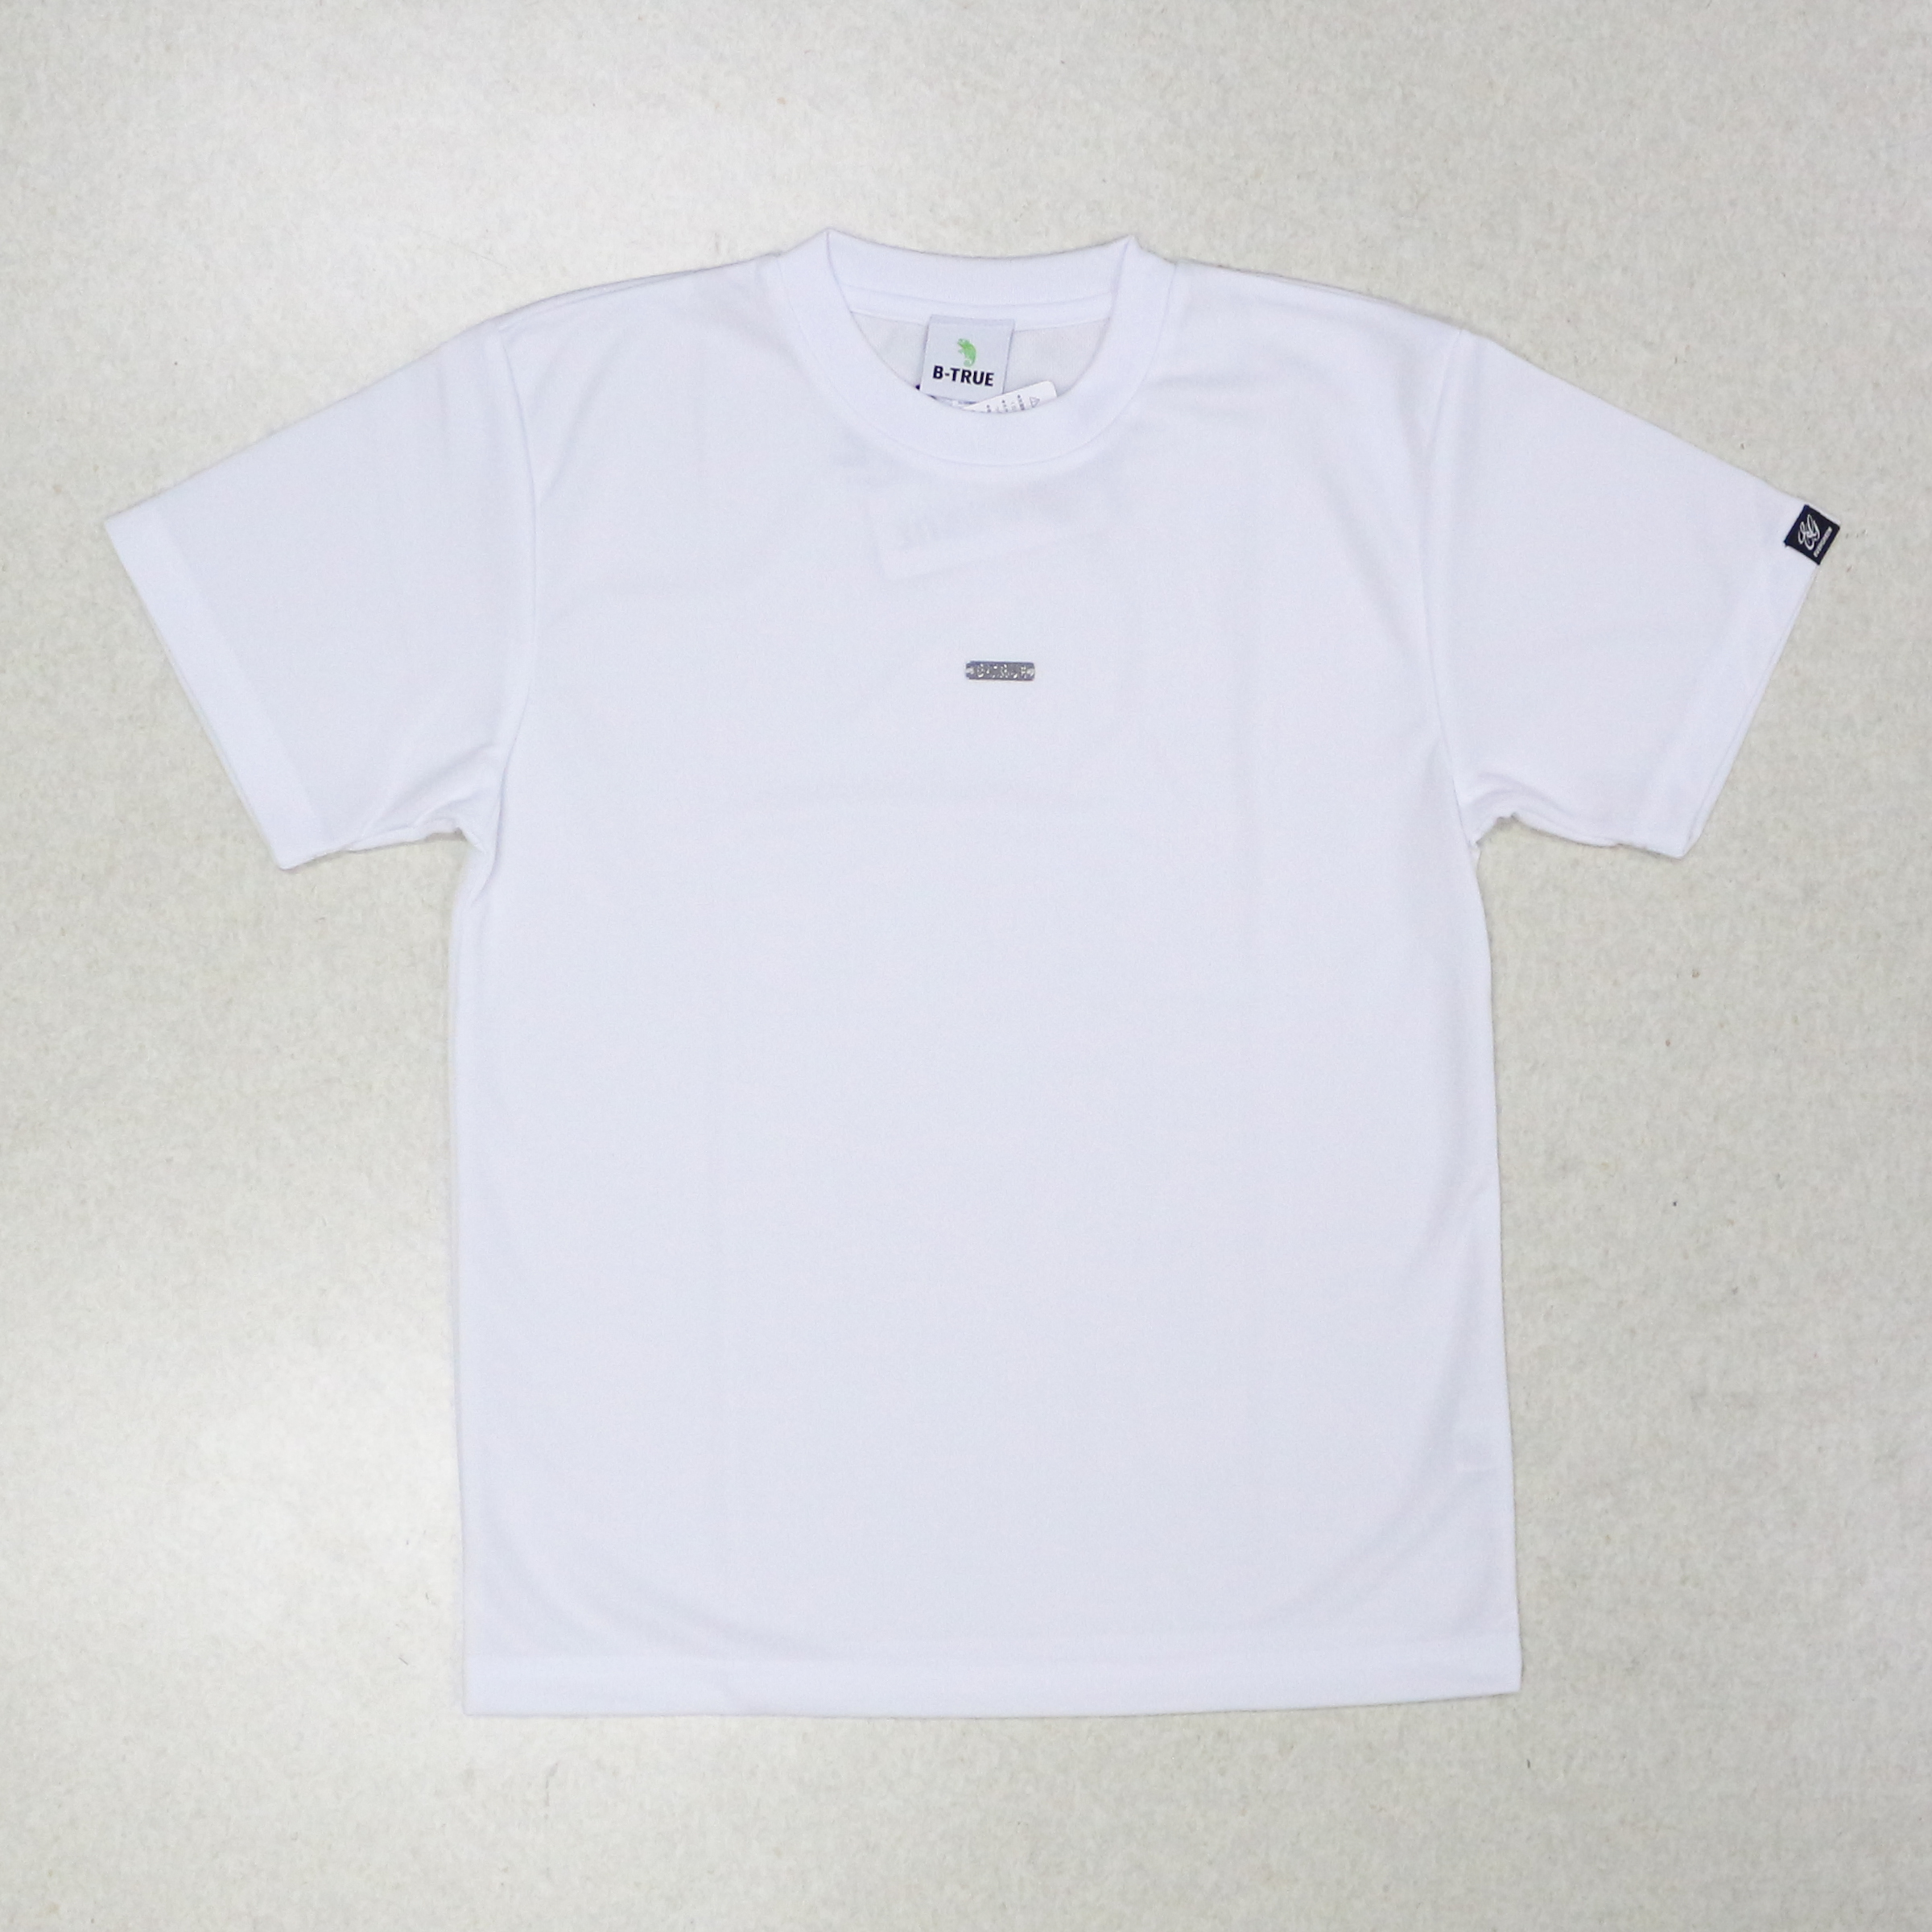 Evergreen T-Shirt Dry Fit Short Sleeve B-True B Type Size L White (6475)